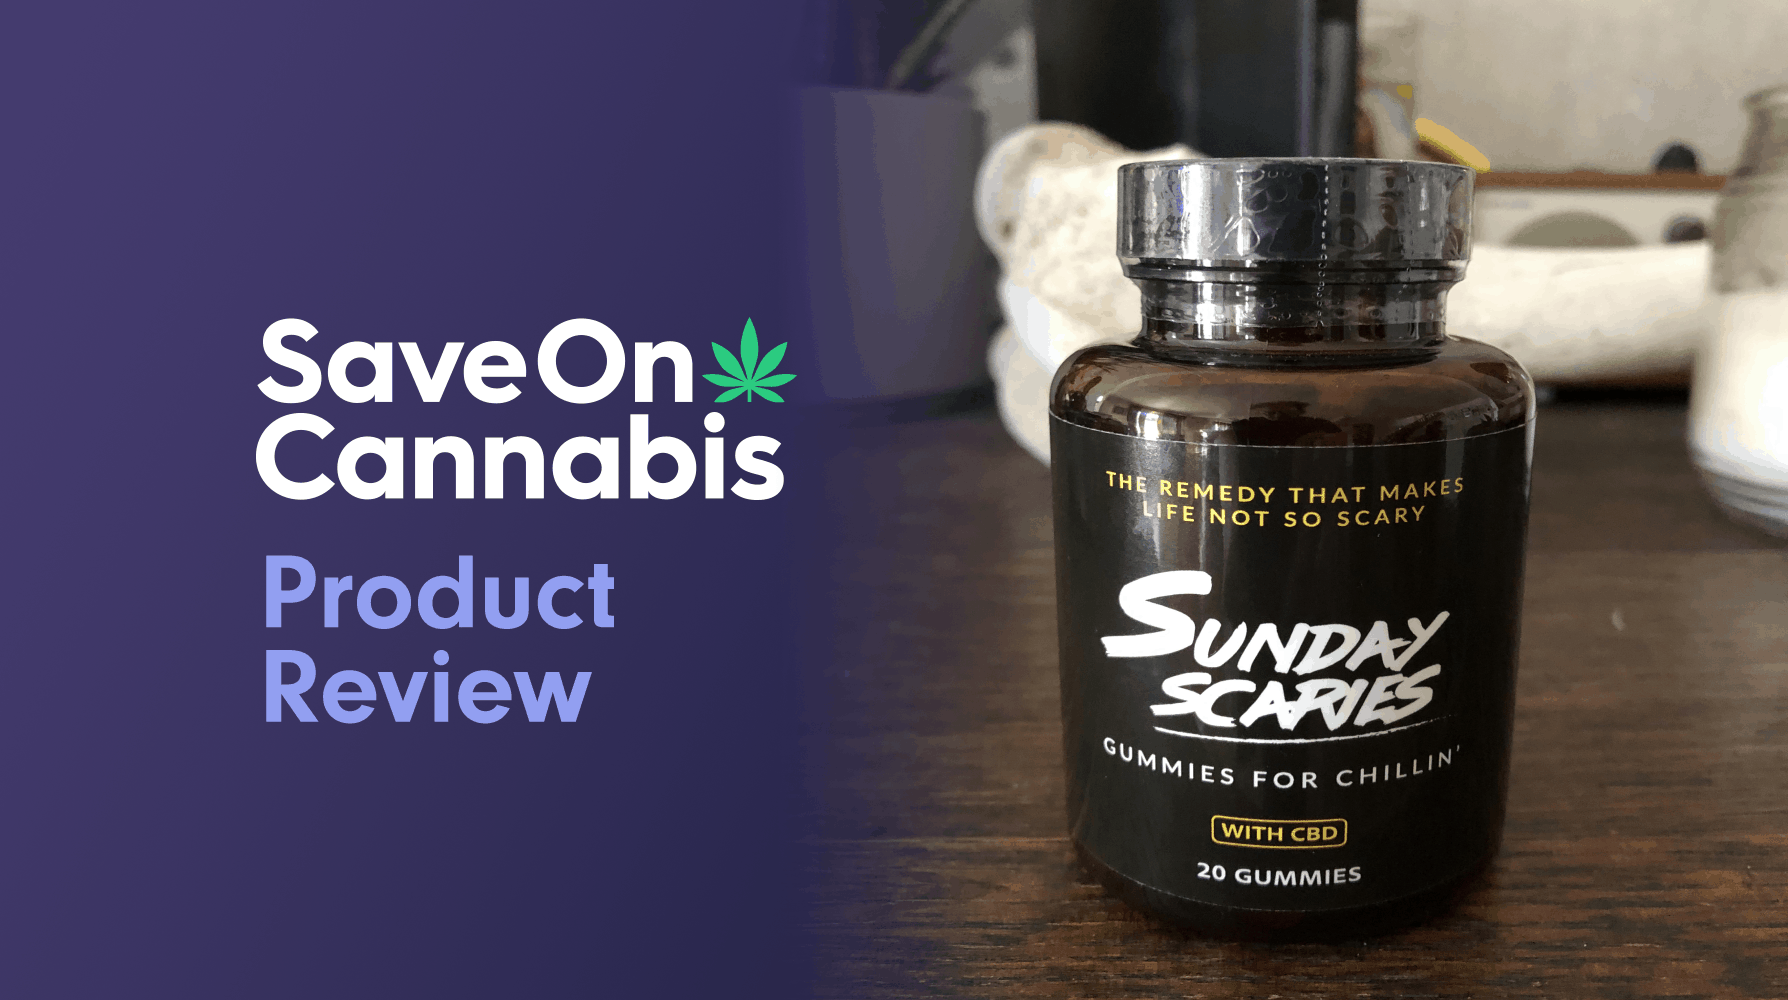 Sunday Scaries Gummies Save On Cannabis Review Website